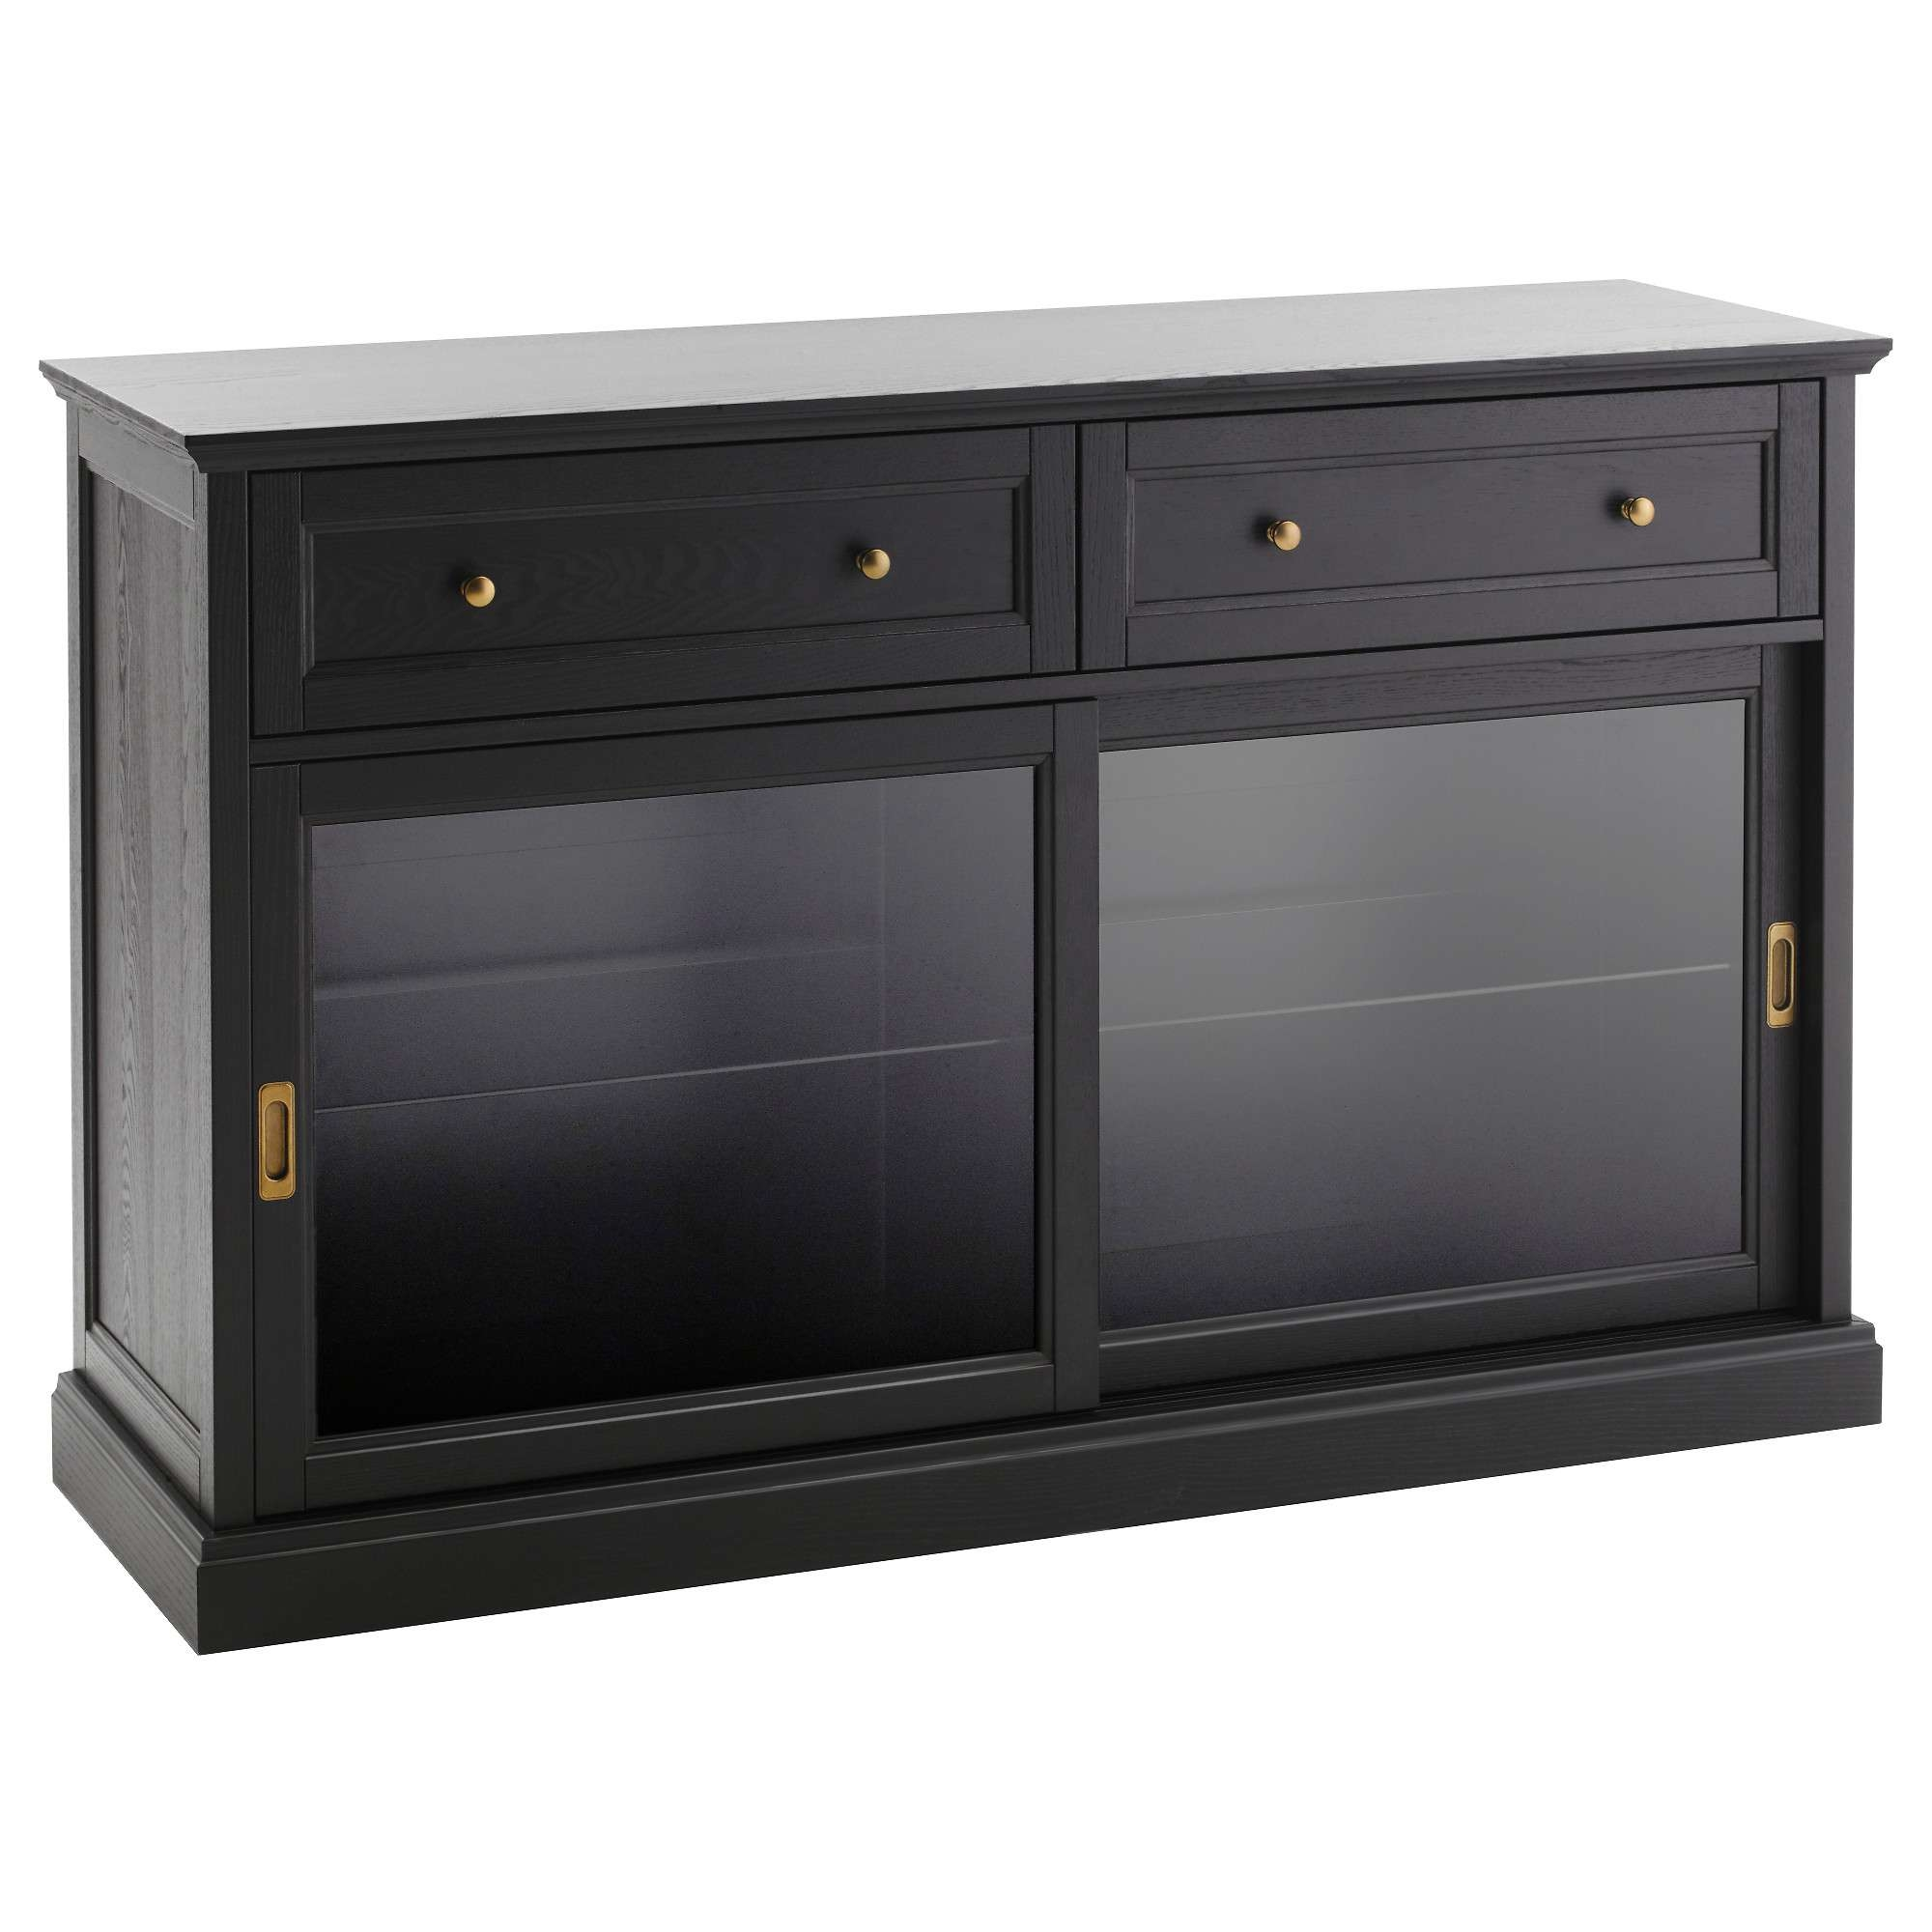 Buffet Tables & Sideboards – Ikea With Regard To Sideboards With Hutch (View 18 of 20)